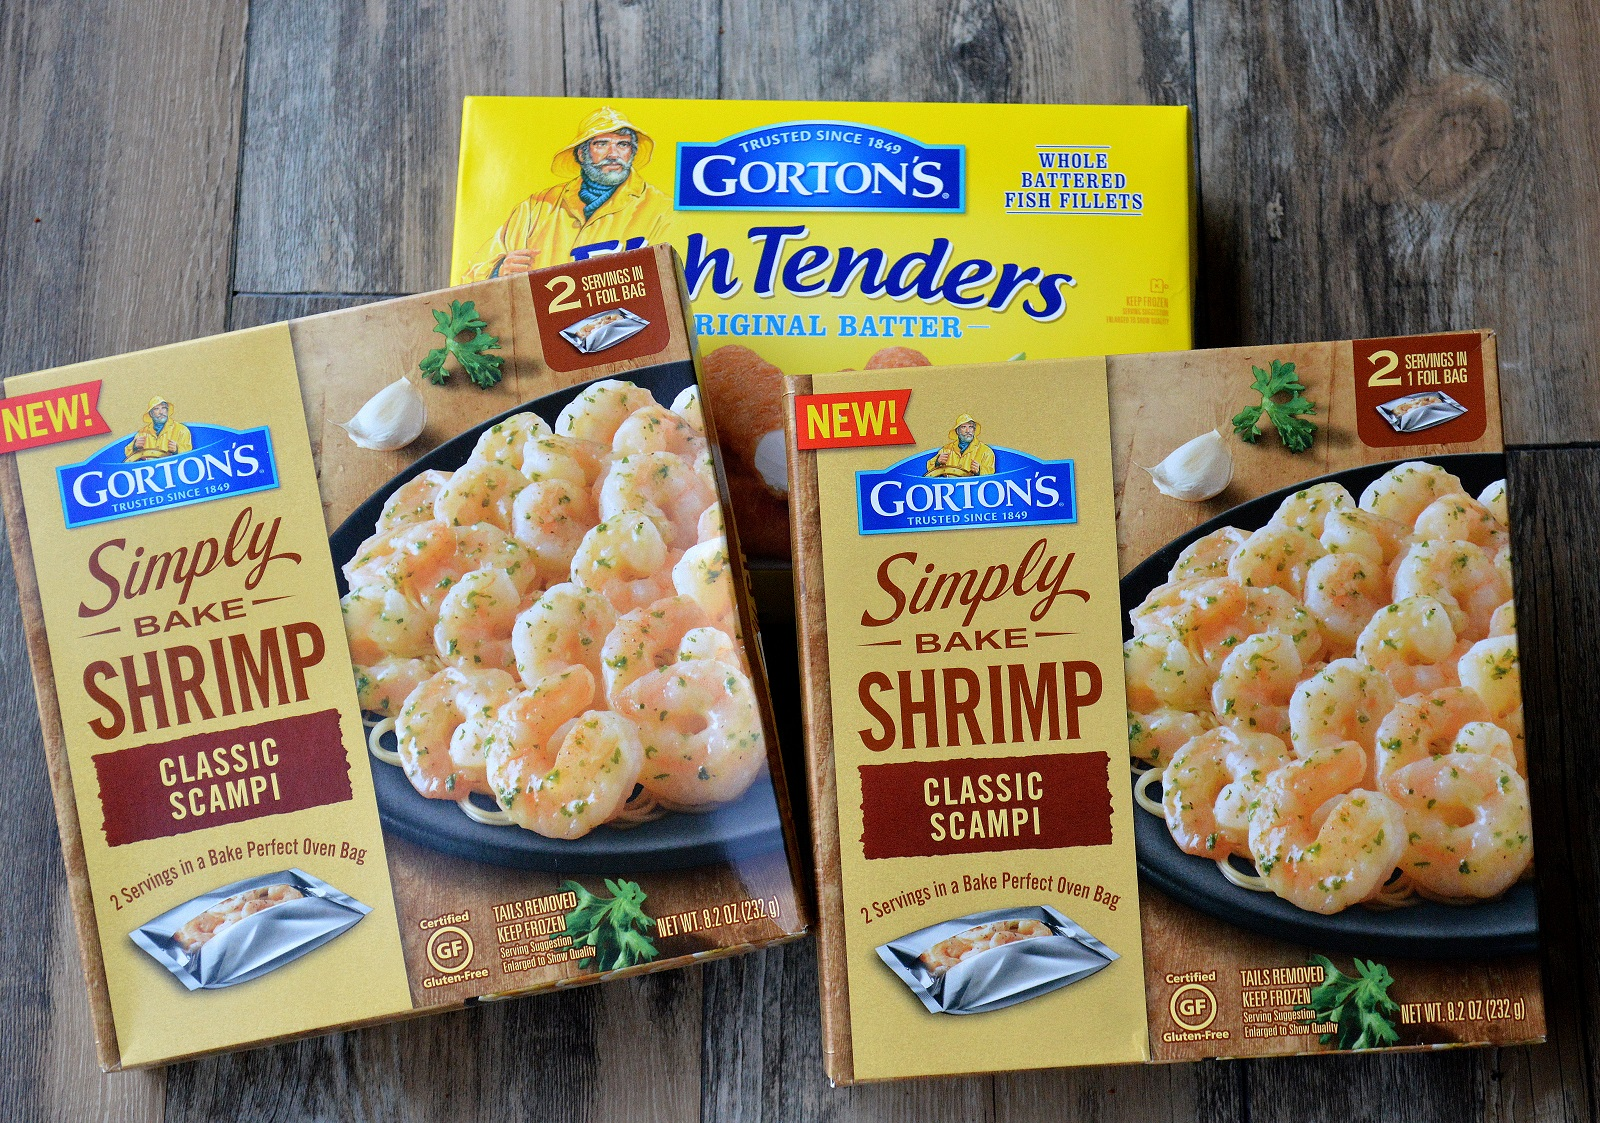 Gorton's Simple Bake Shrimp Scampi